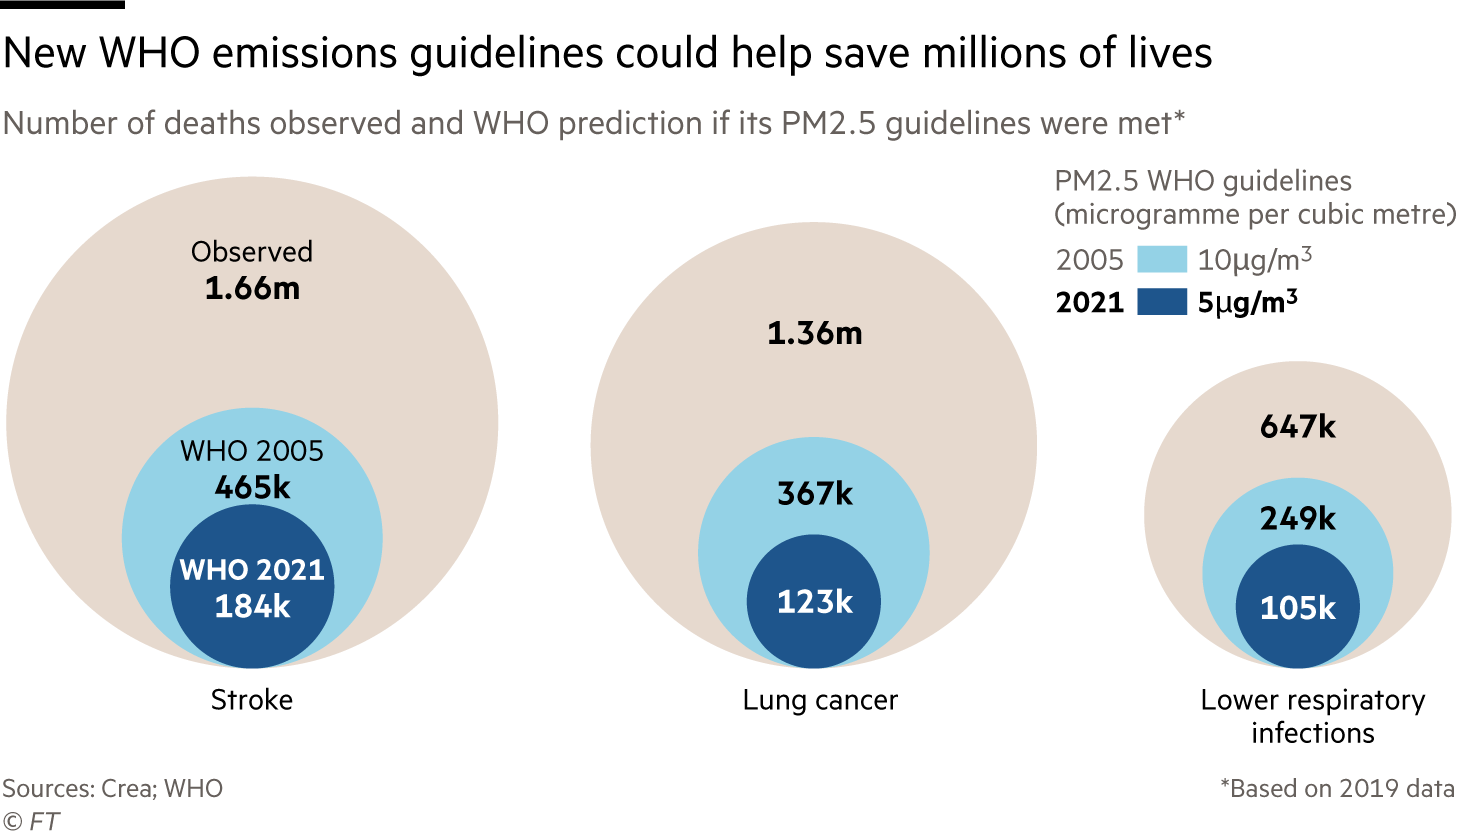 New WHO emissions guidelines could help save millions of lives. Chart showing number of deaths observed and WHO prediction if its PM2.5 guidelines were met